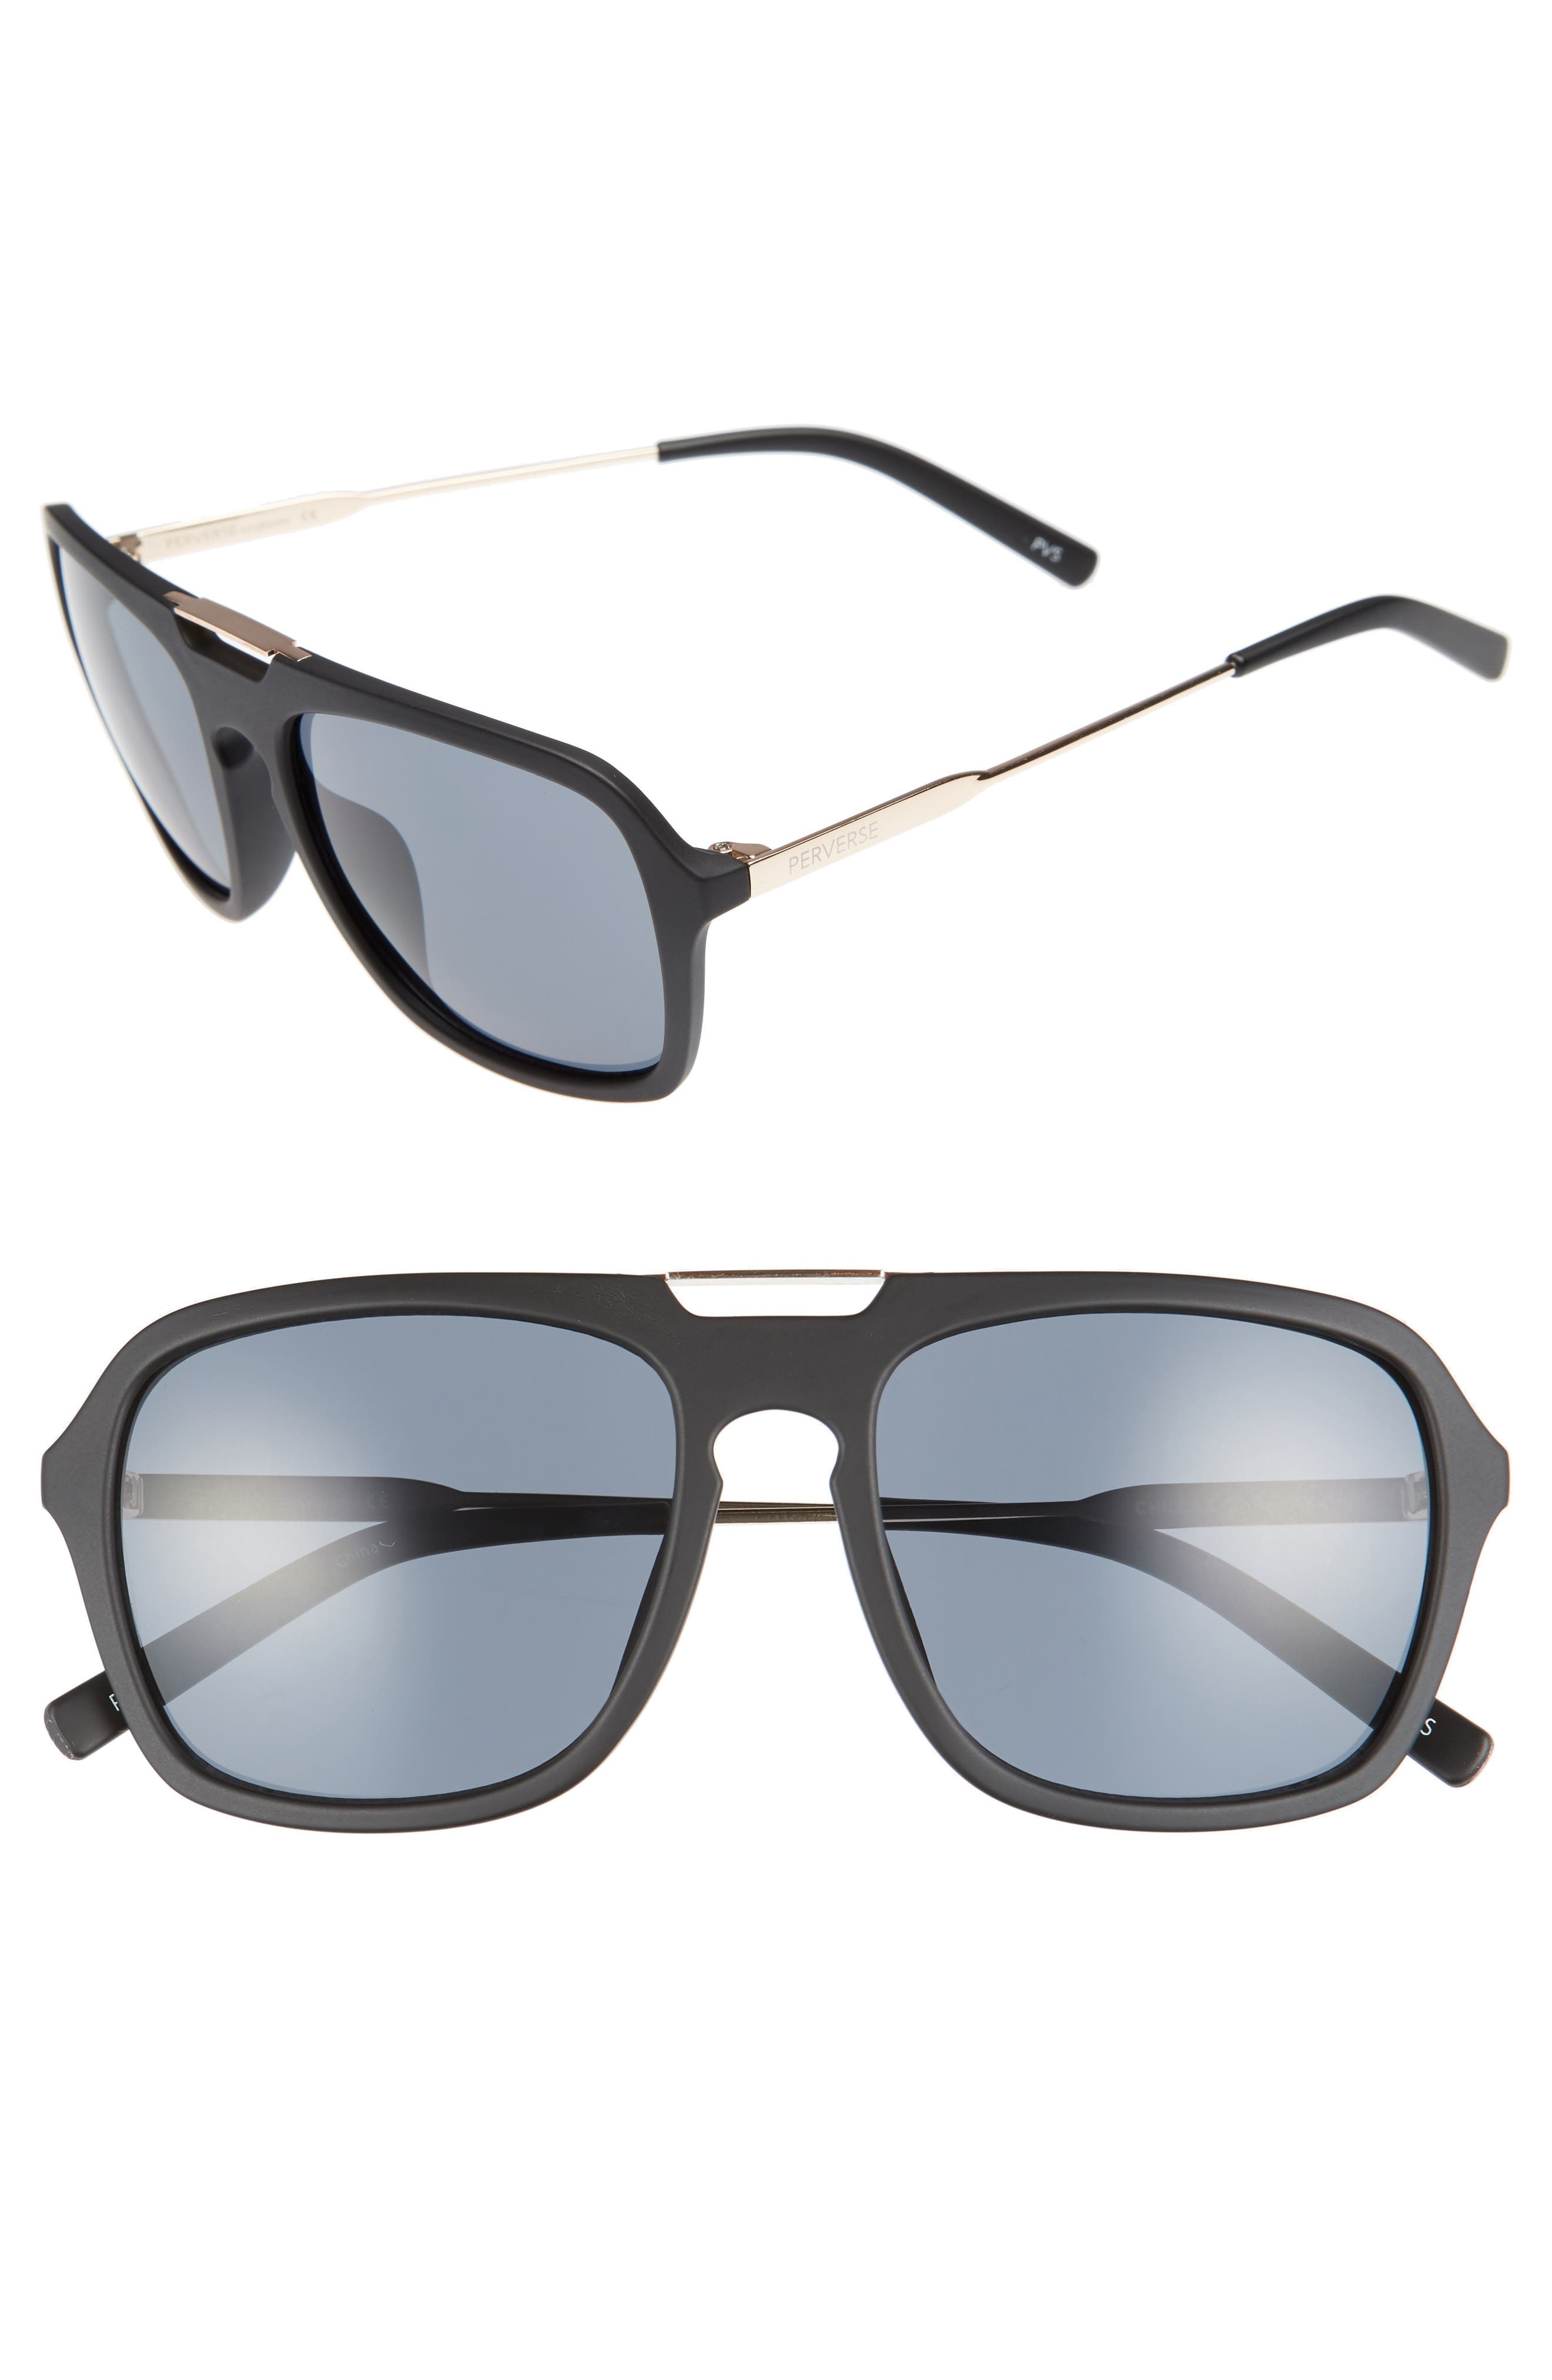 Main Image - PERVERSE Chillax 55mm Polarized Aviator Sunglasses